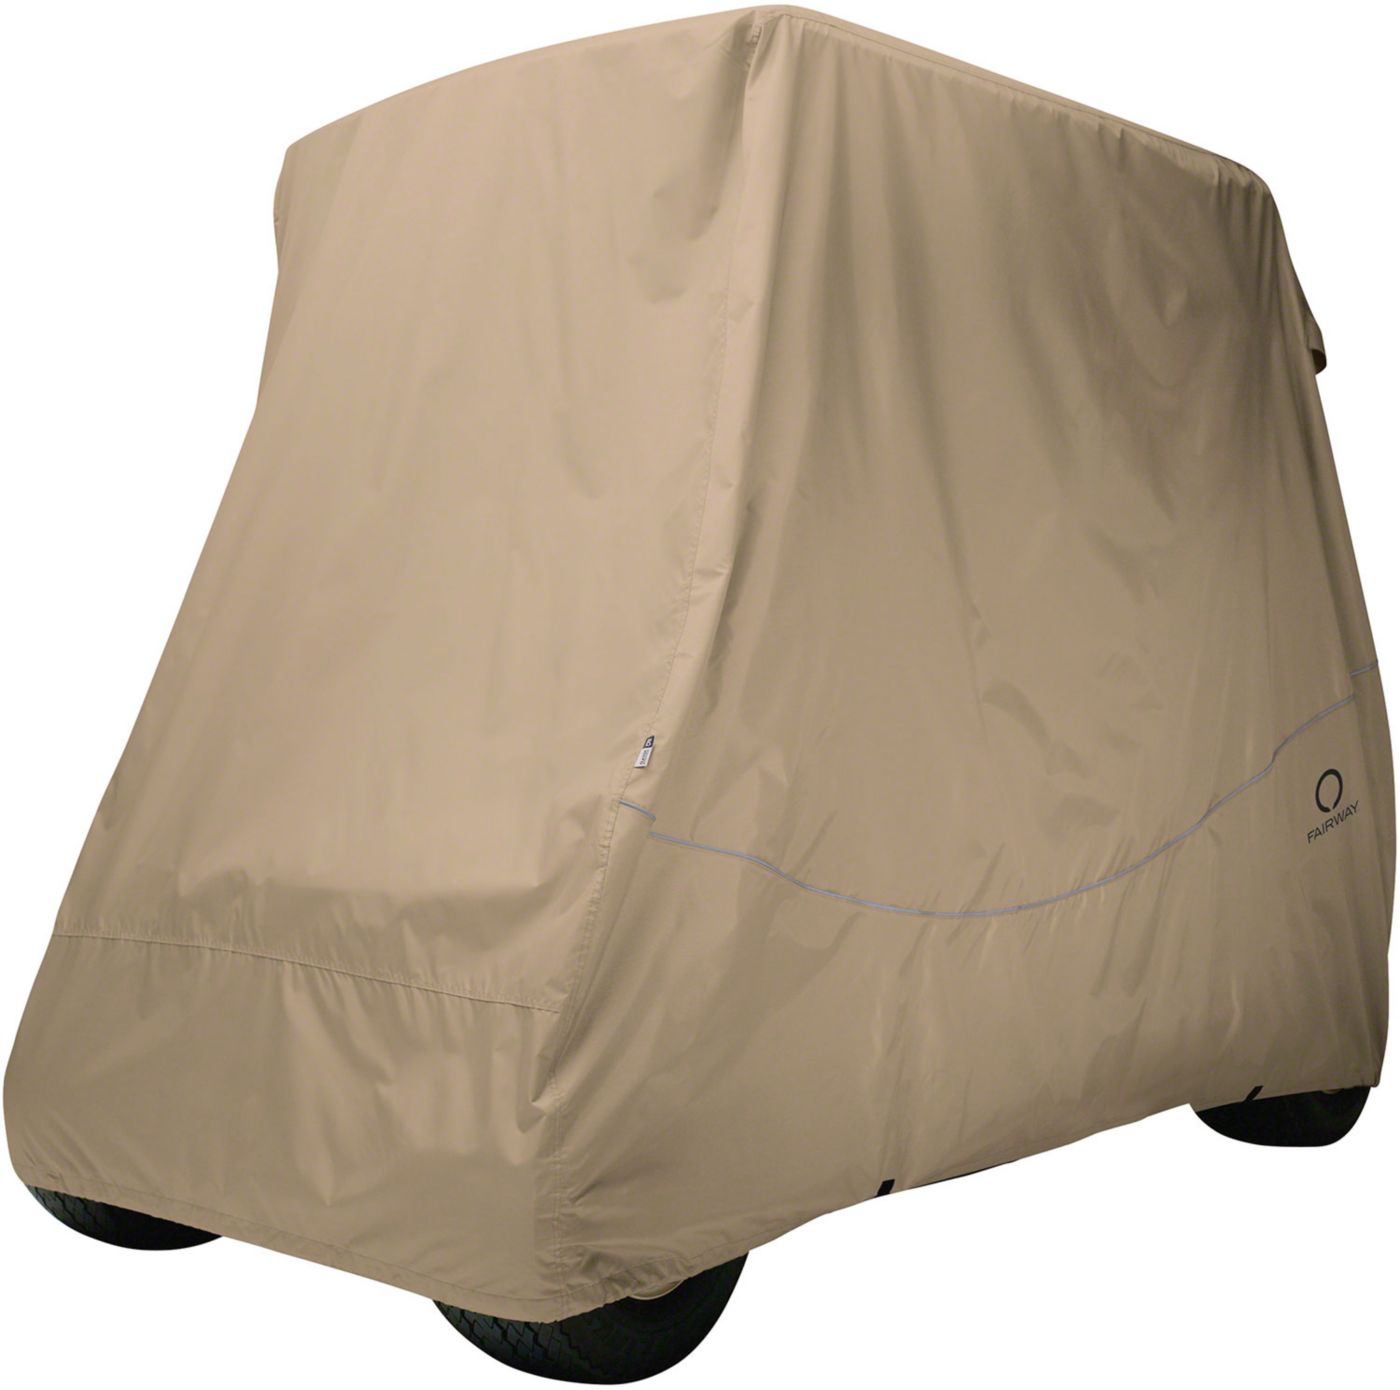 Classic Accessories Fairway Quick-Fit Golf Cart Cover